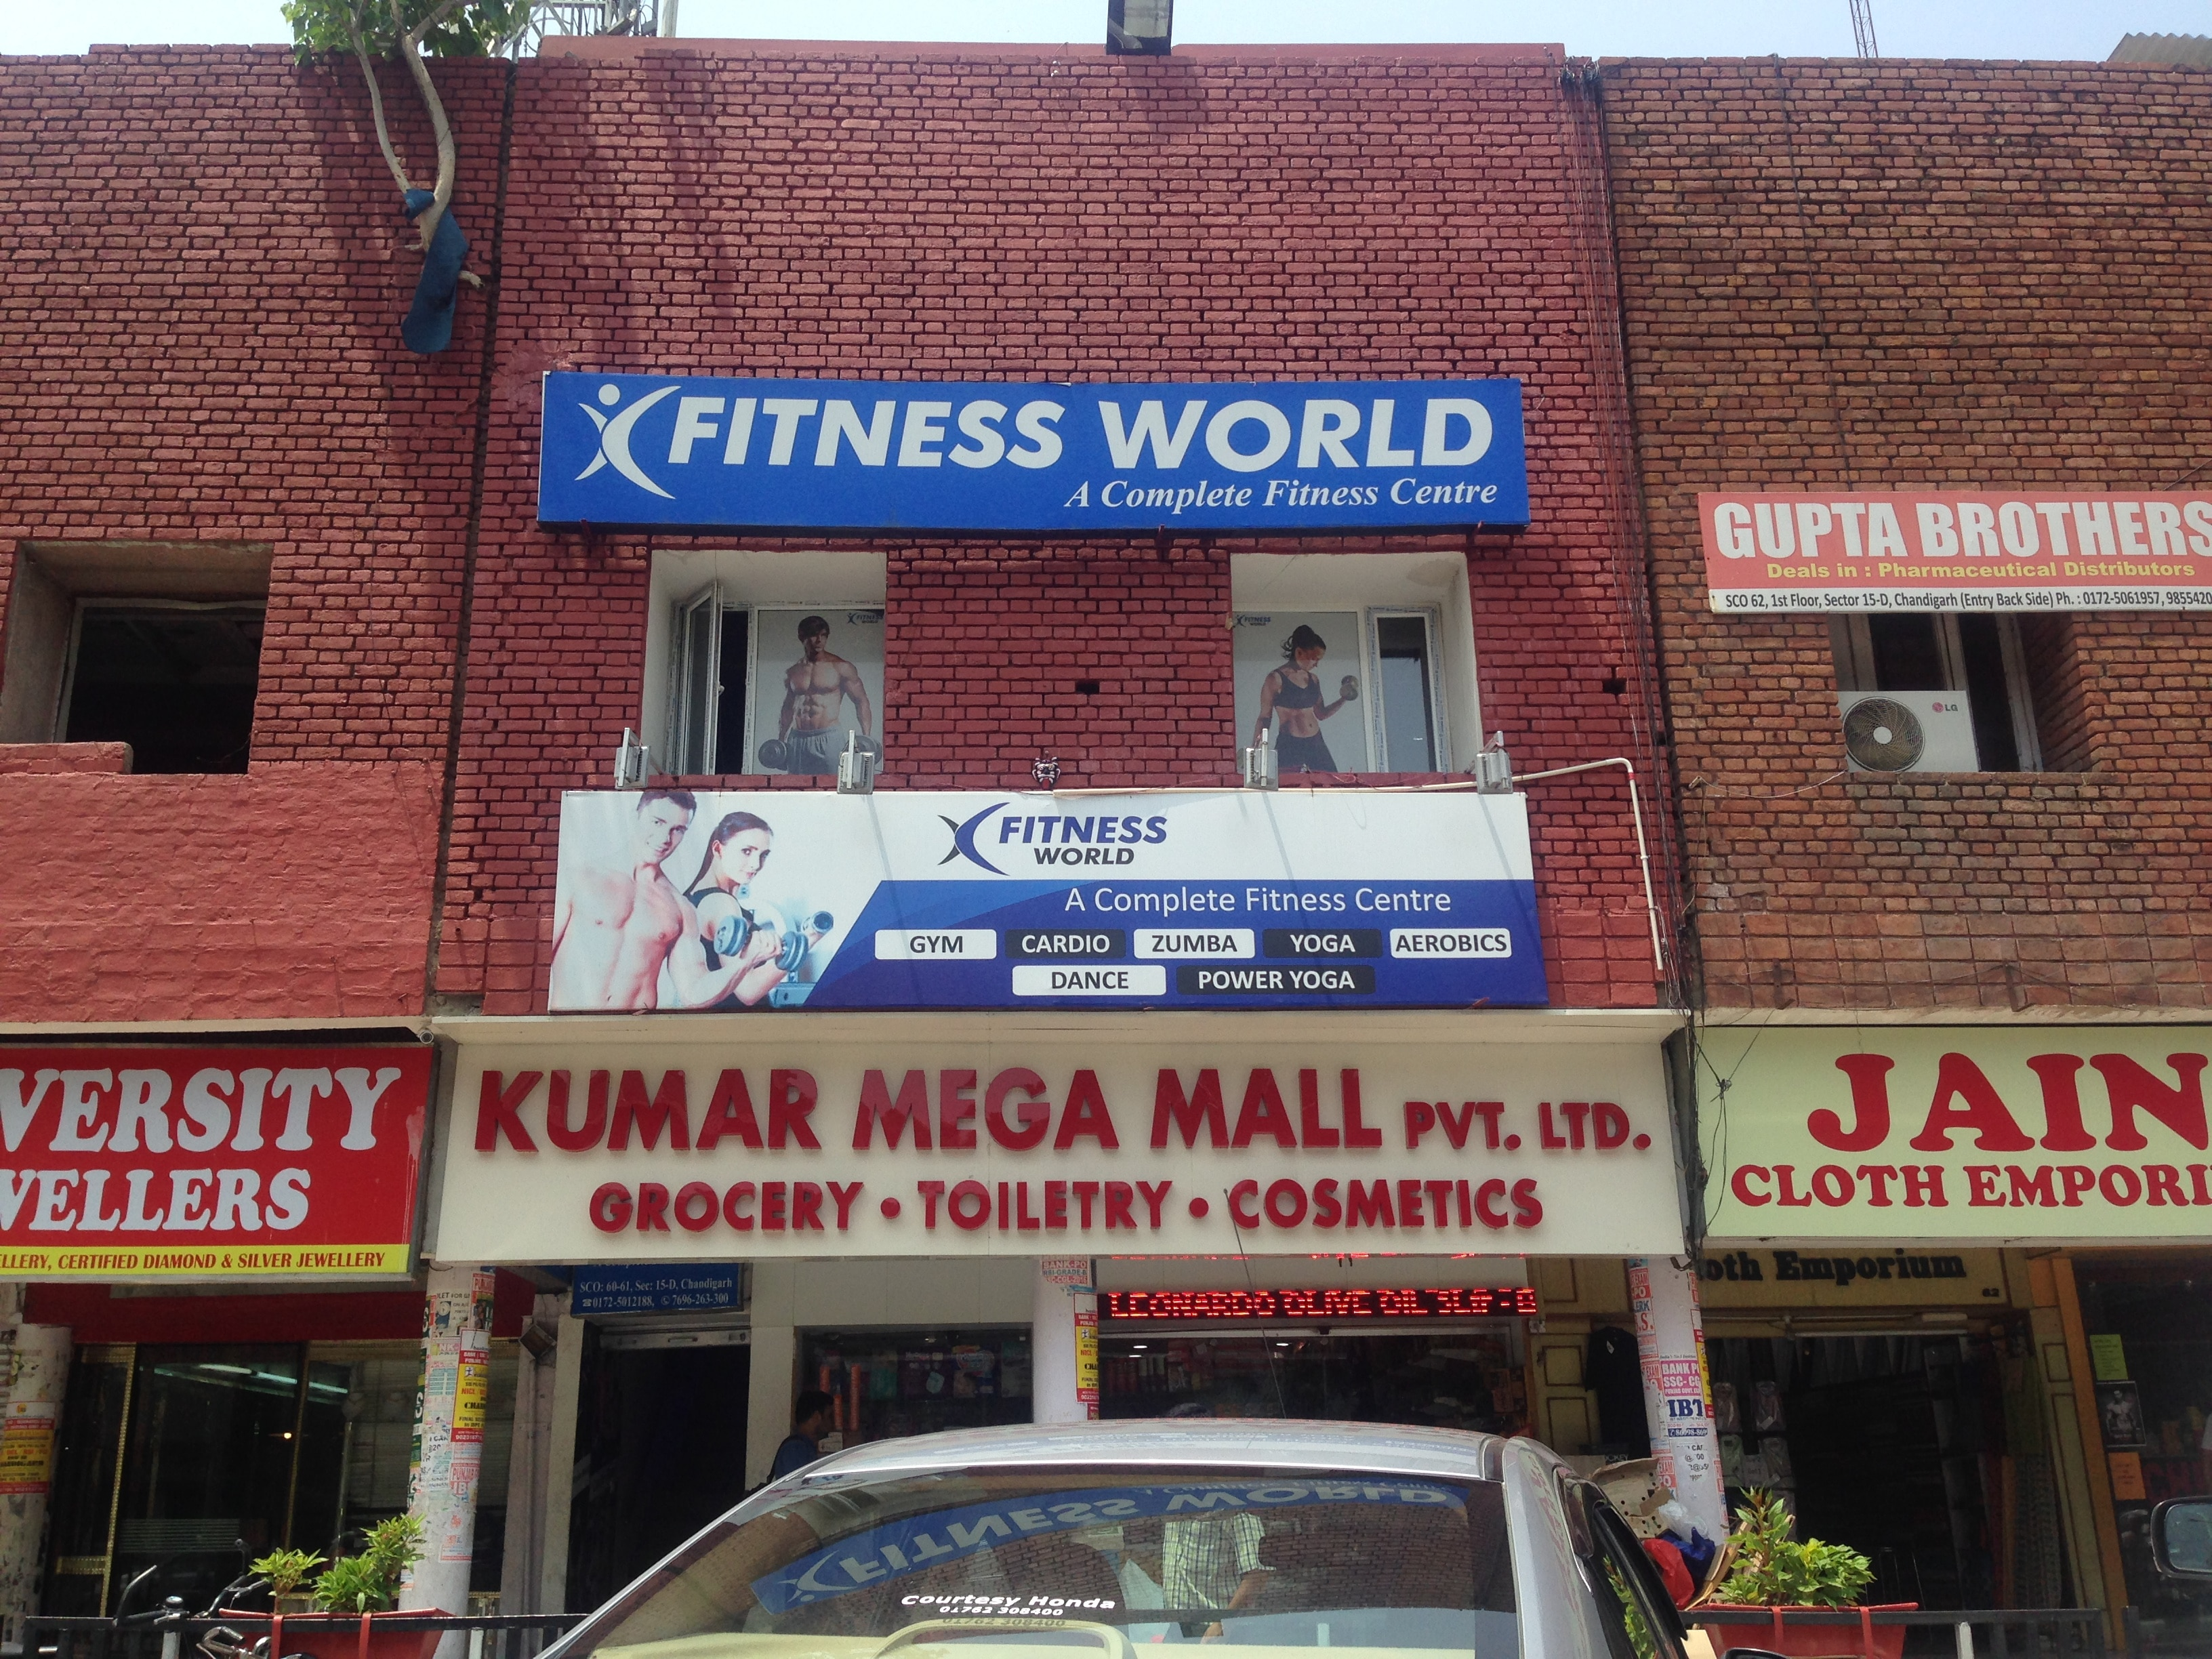 Reduce your obesity with fitness world at sector 15 chandigarh Best gym at Chandigarh . Our gym trainer help you to reduce your obesity at very affordable price Gym in Chandigarh